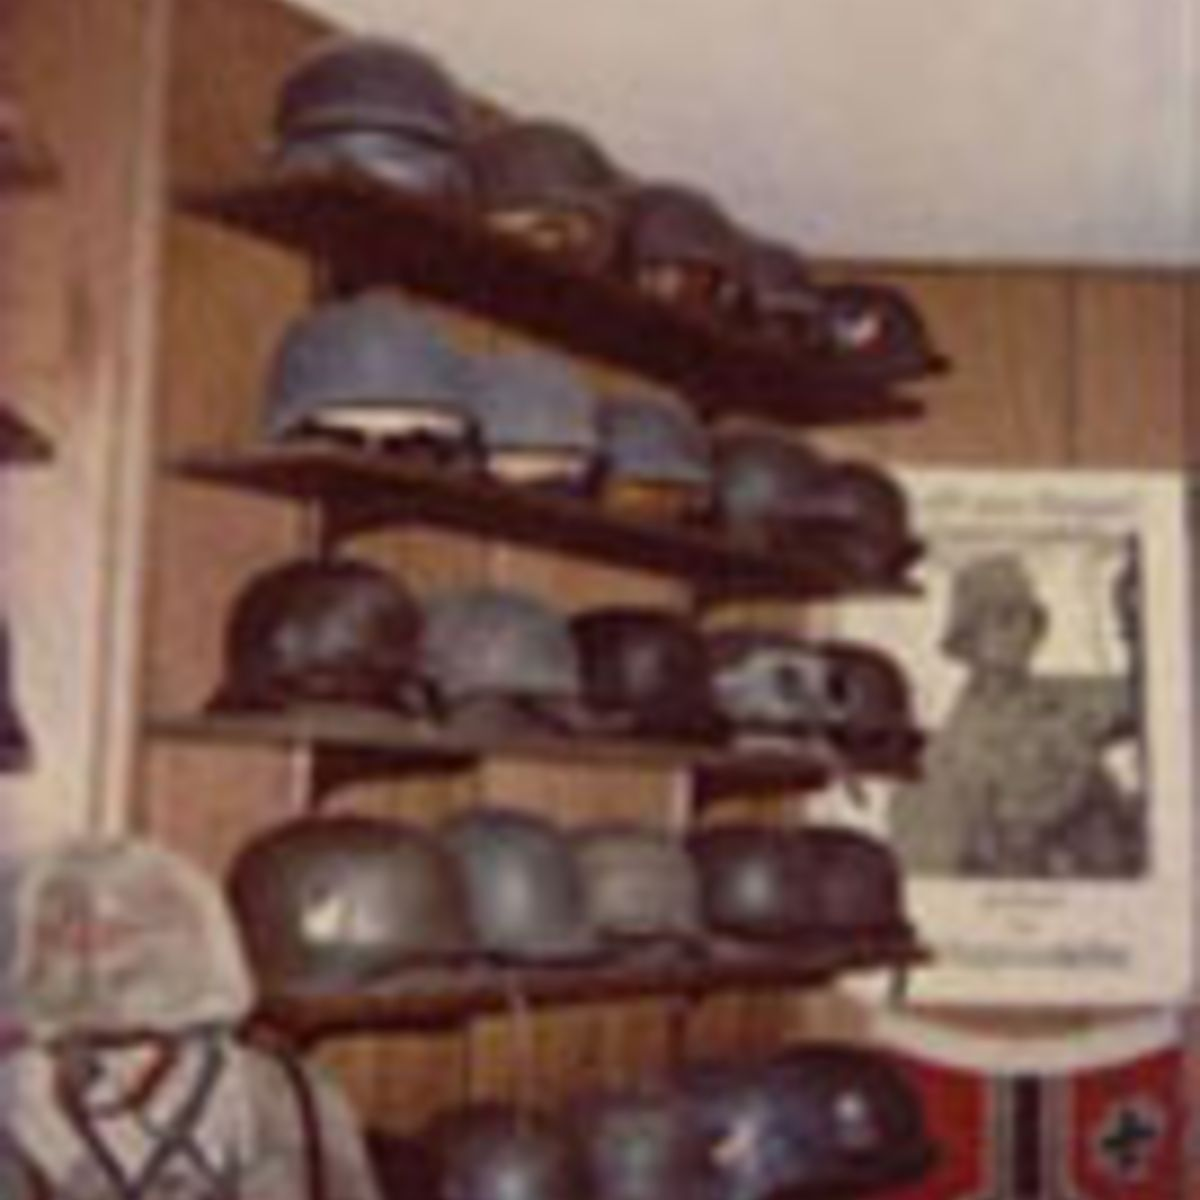 COLLECTION OF WWII GERMAN HELMETS.